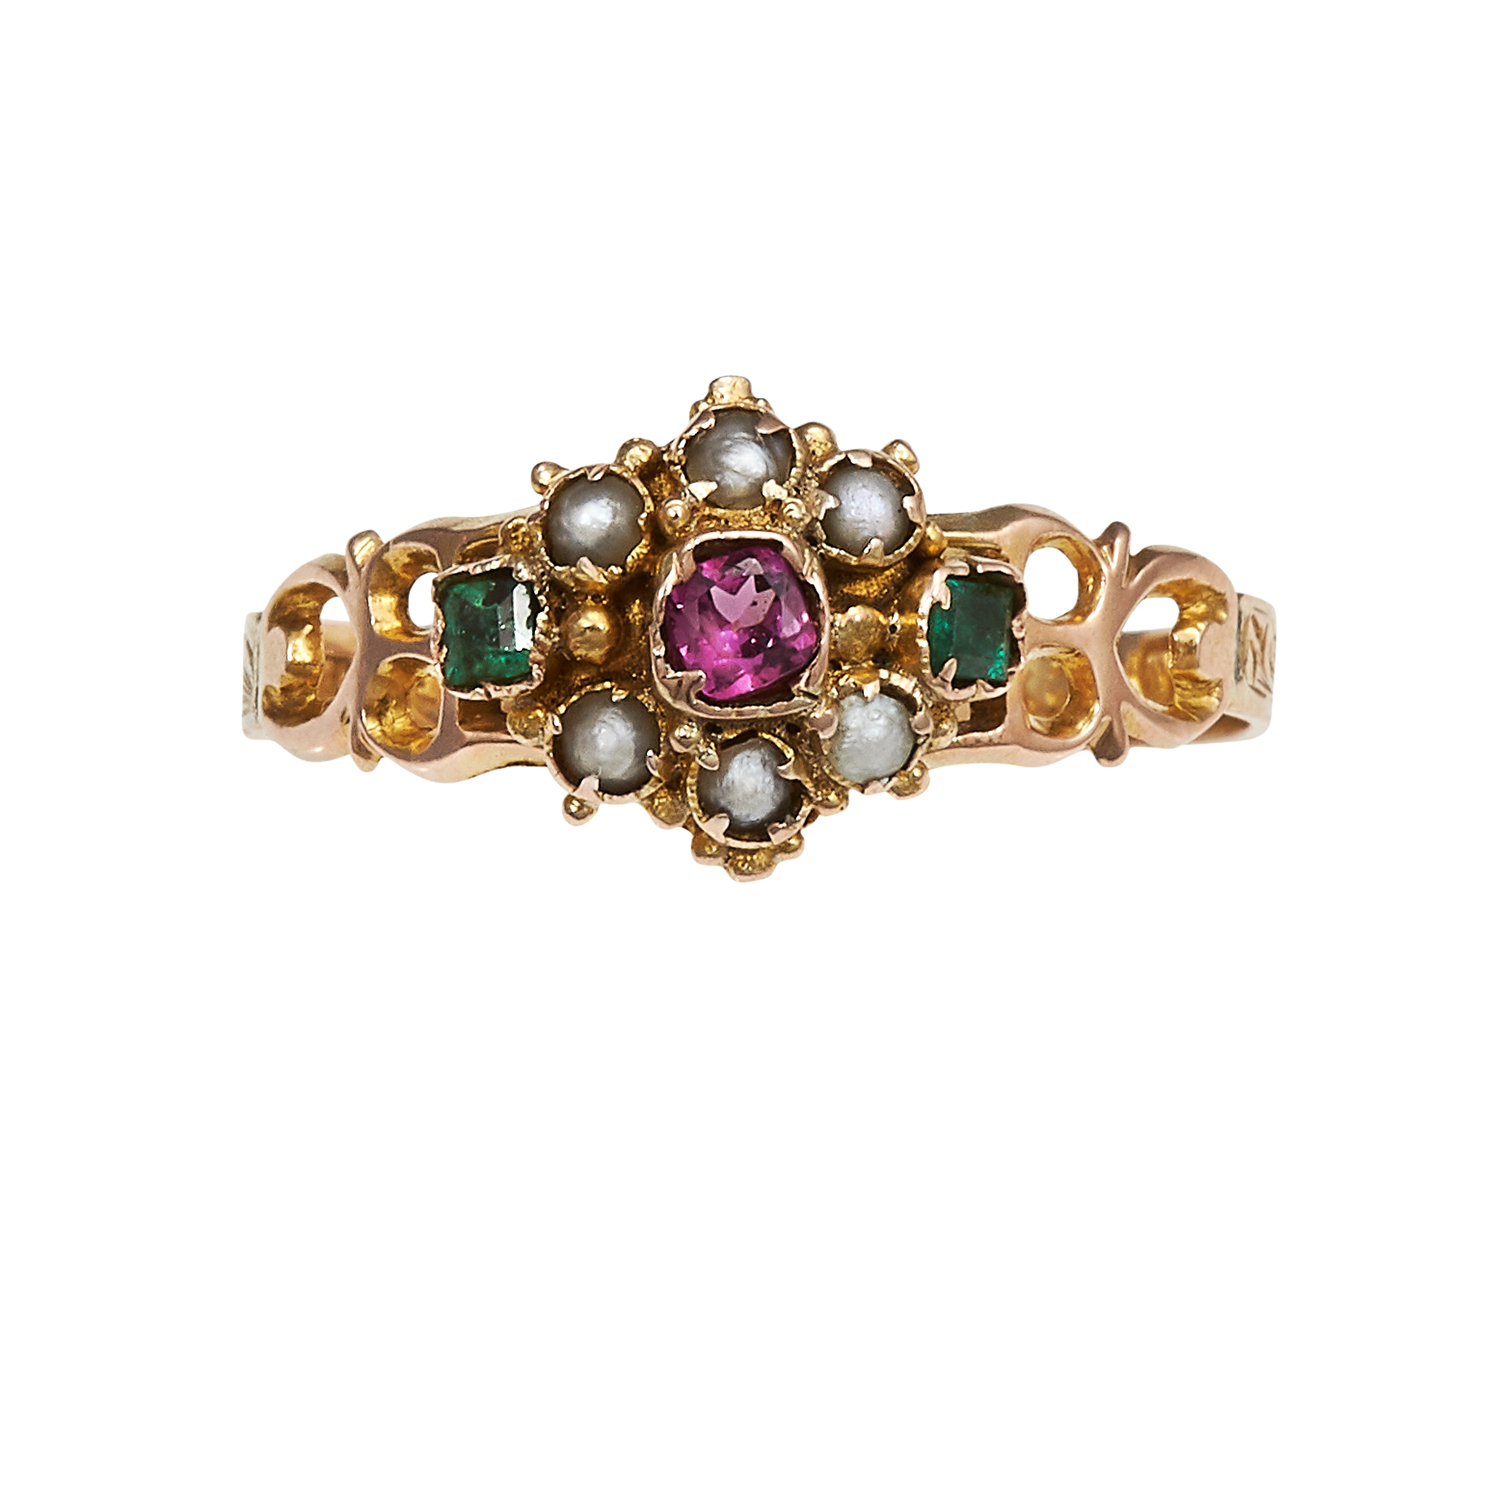 Los 15 - AN ANTIQUE GARNET, EMERALD AND PEARL RING, CIRCA 1870 in yellow gold, the principal garnet and pearl